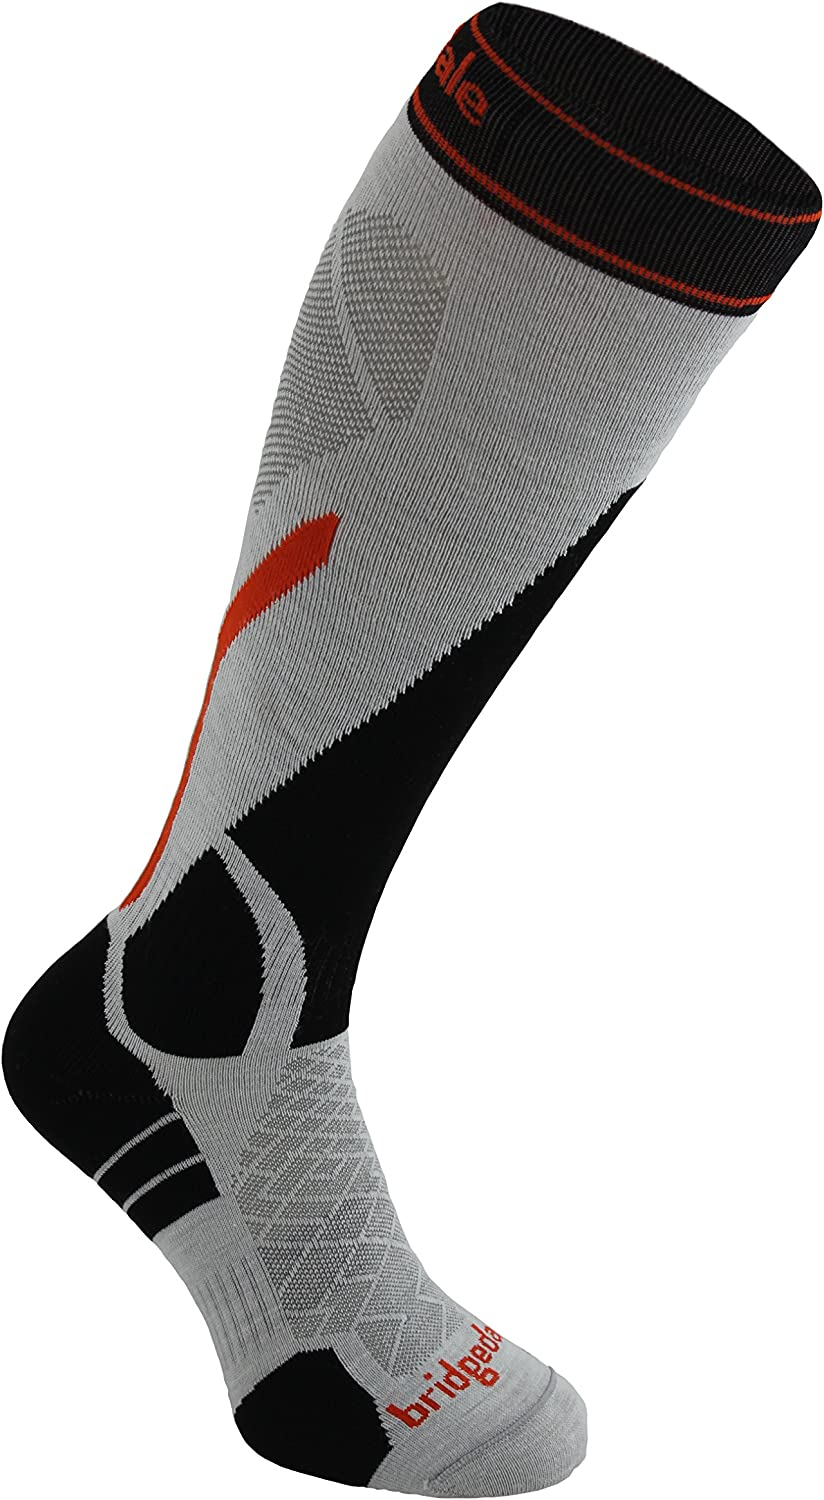 Bridgedale Men's Vertige Light Socks